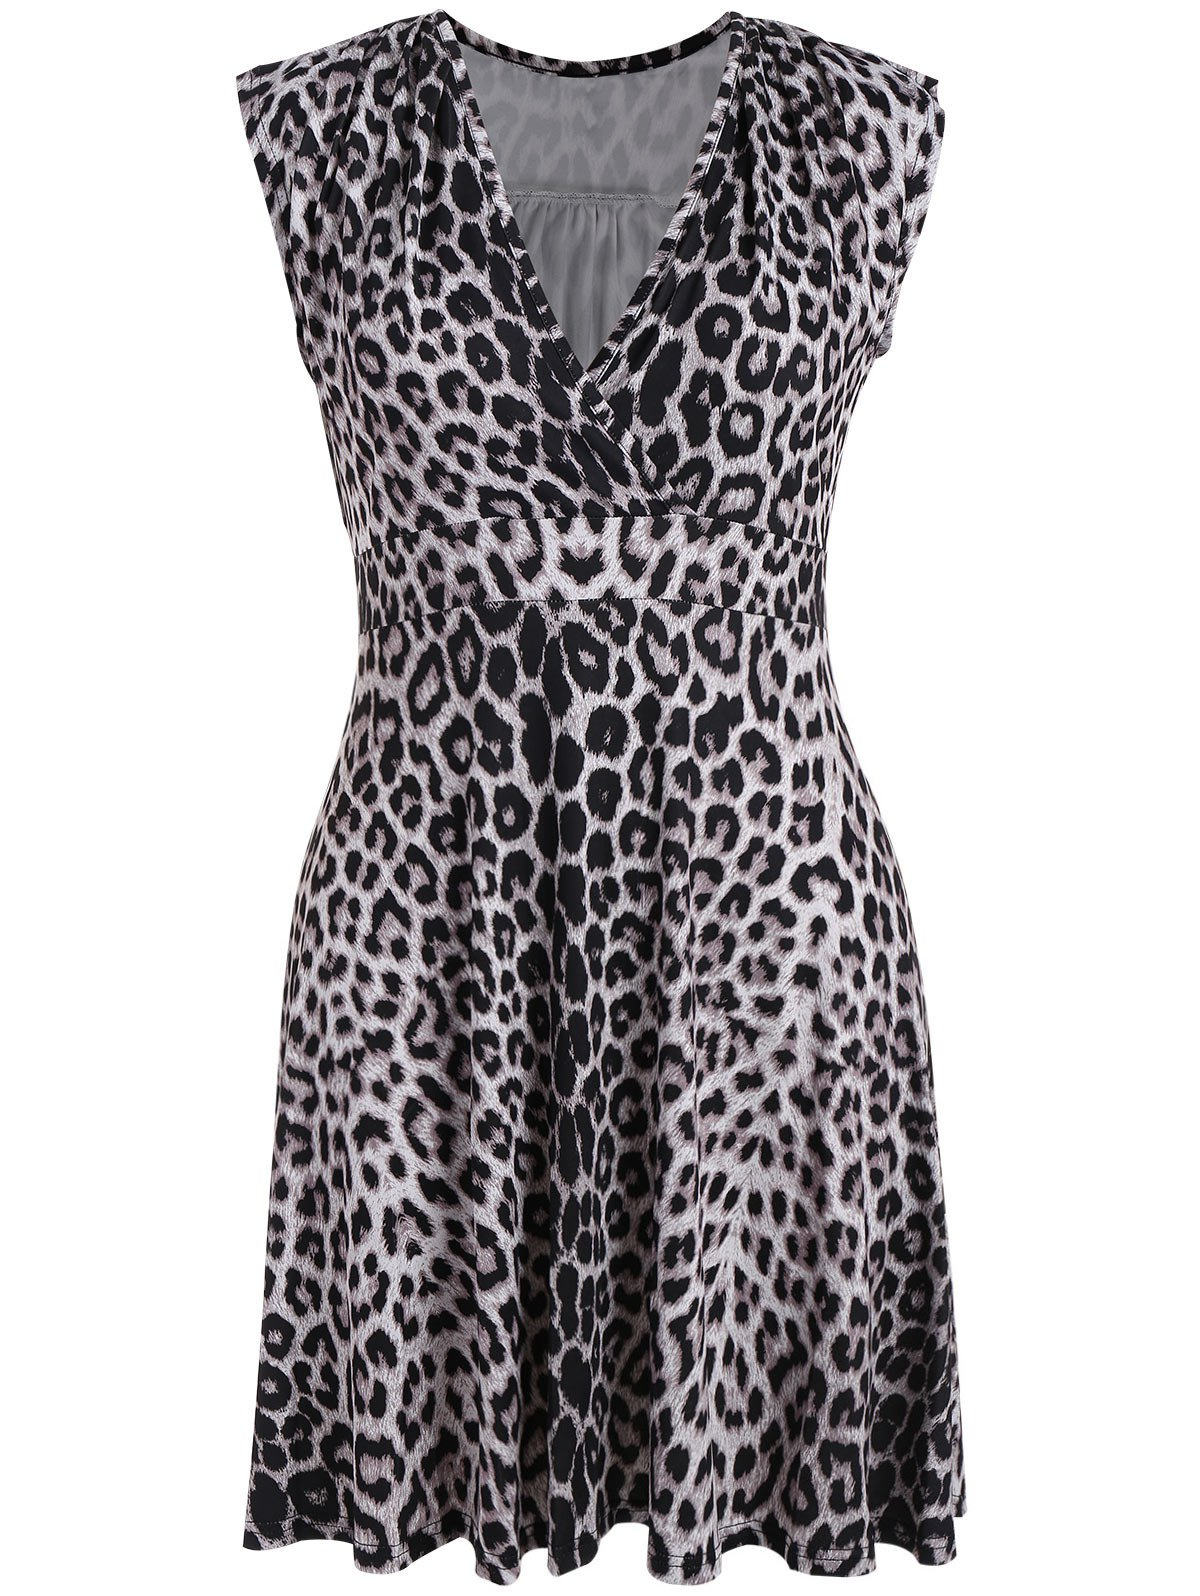 Leopard Print Surplice Plus Size Dress